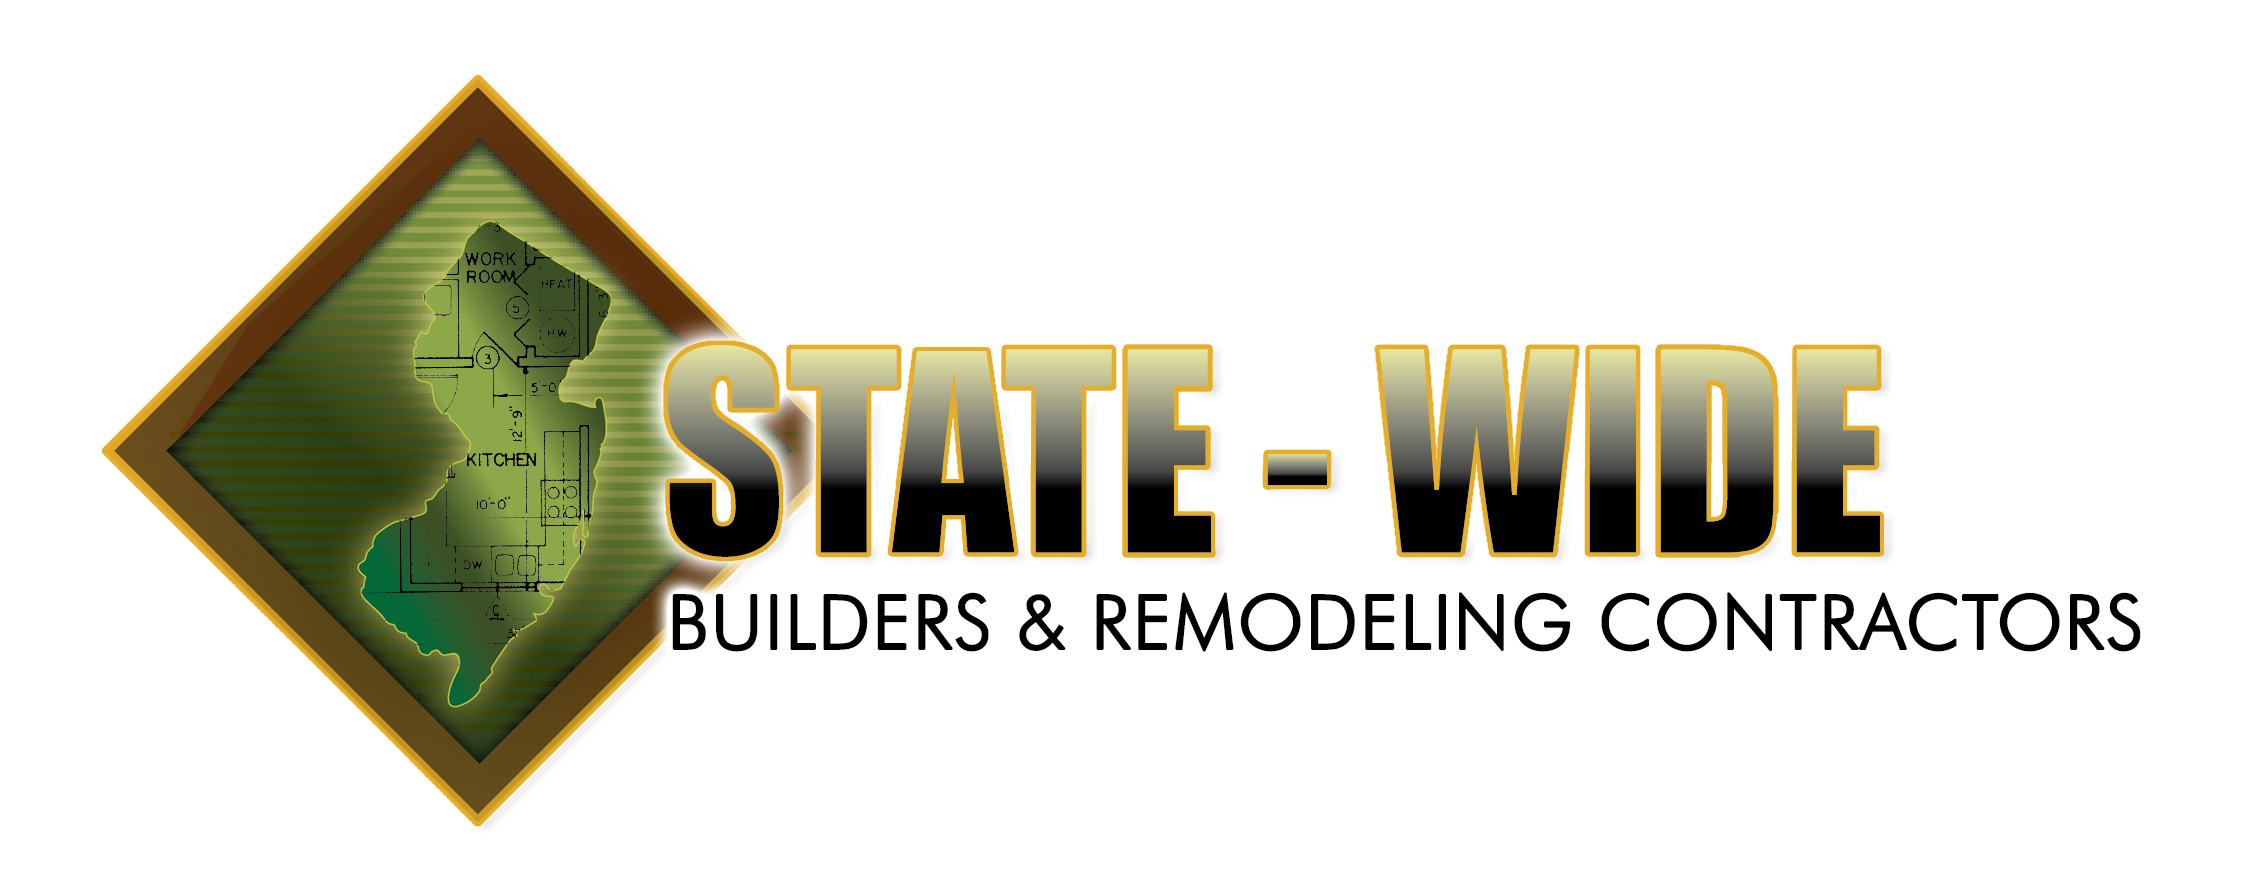 State-Wide Builders and Remodeling Contractors